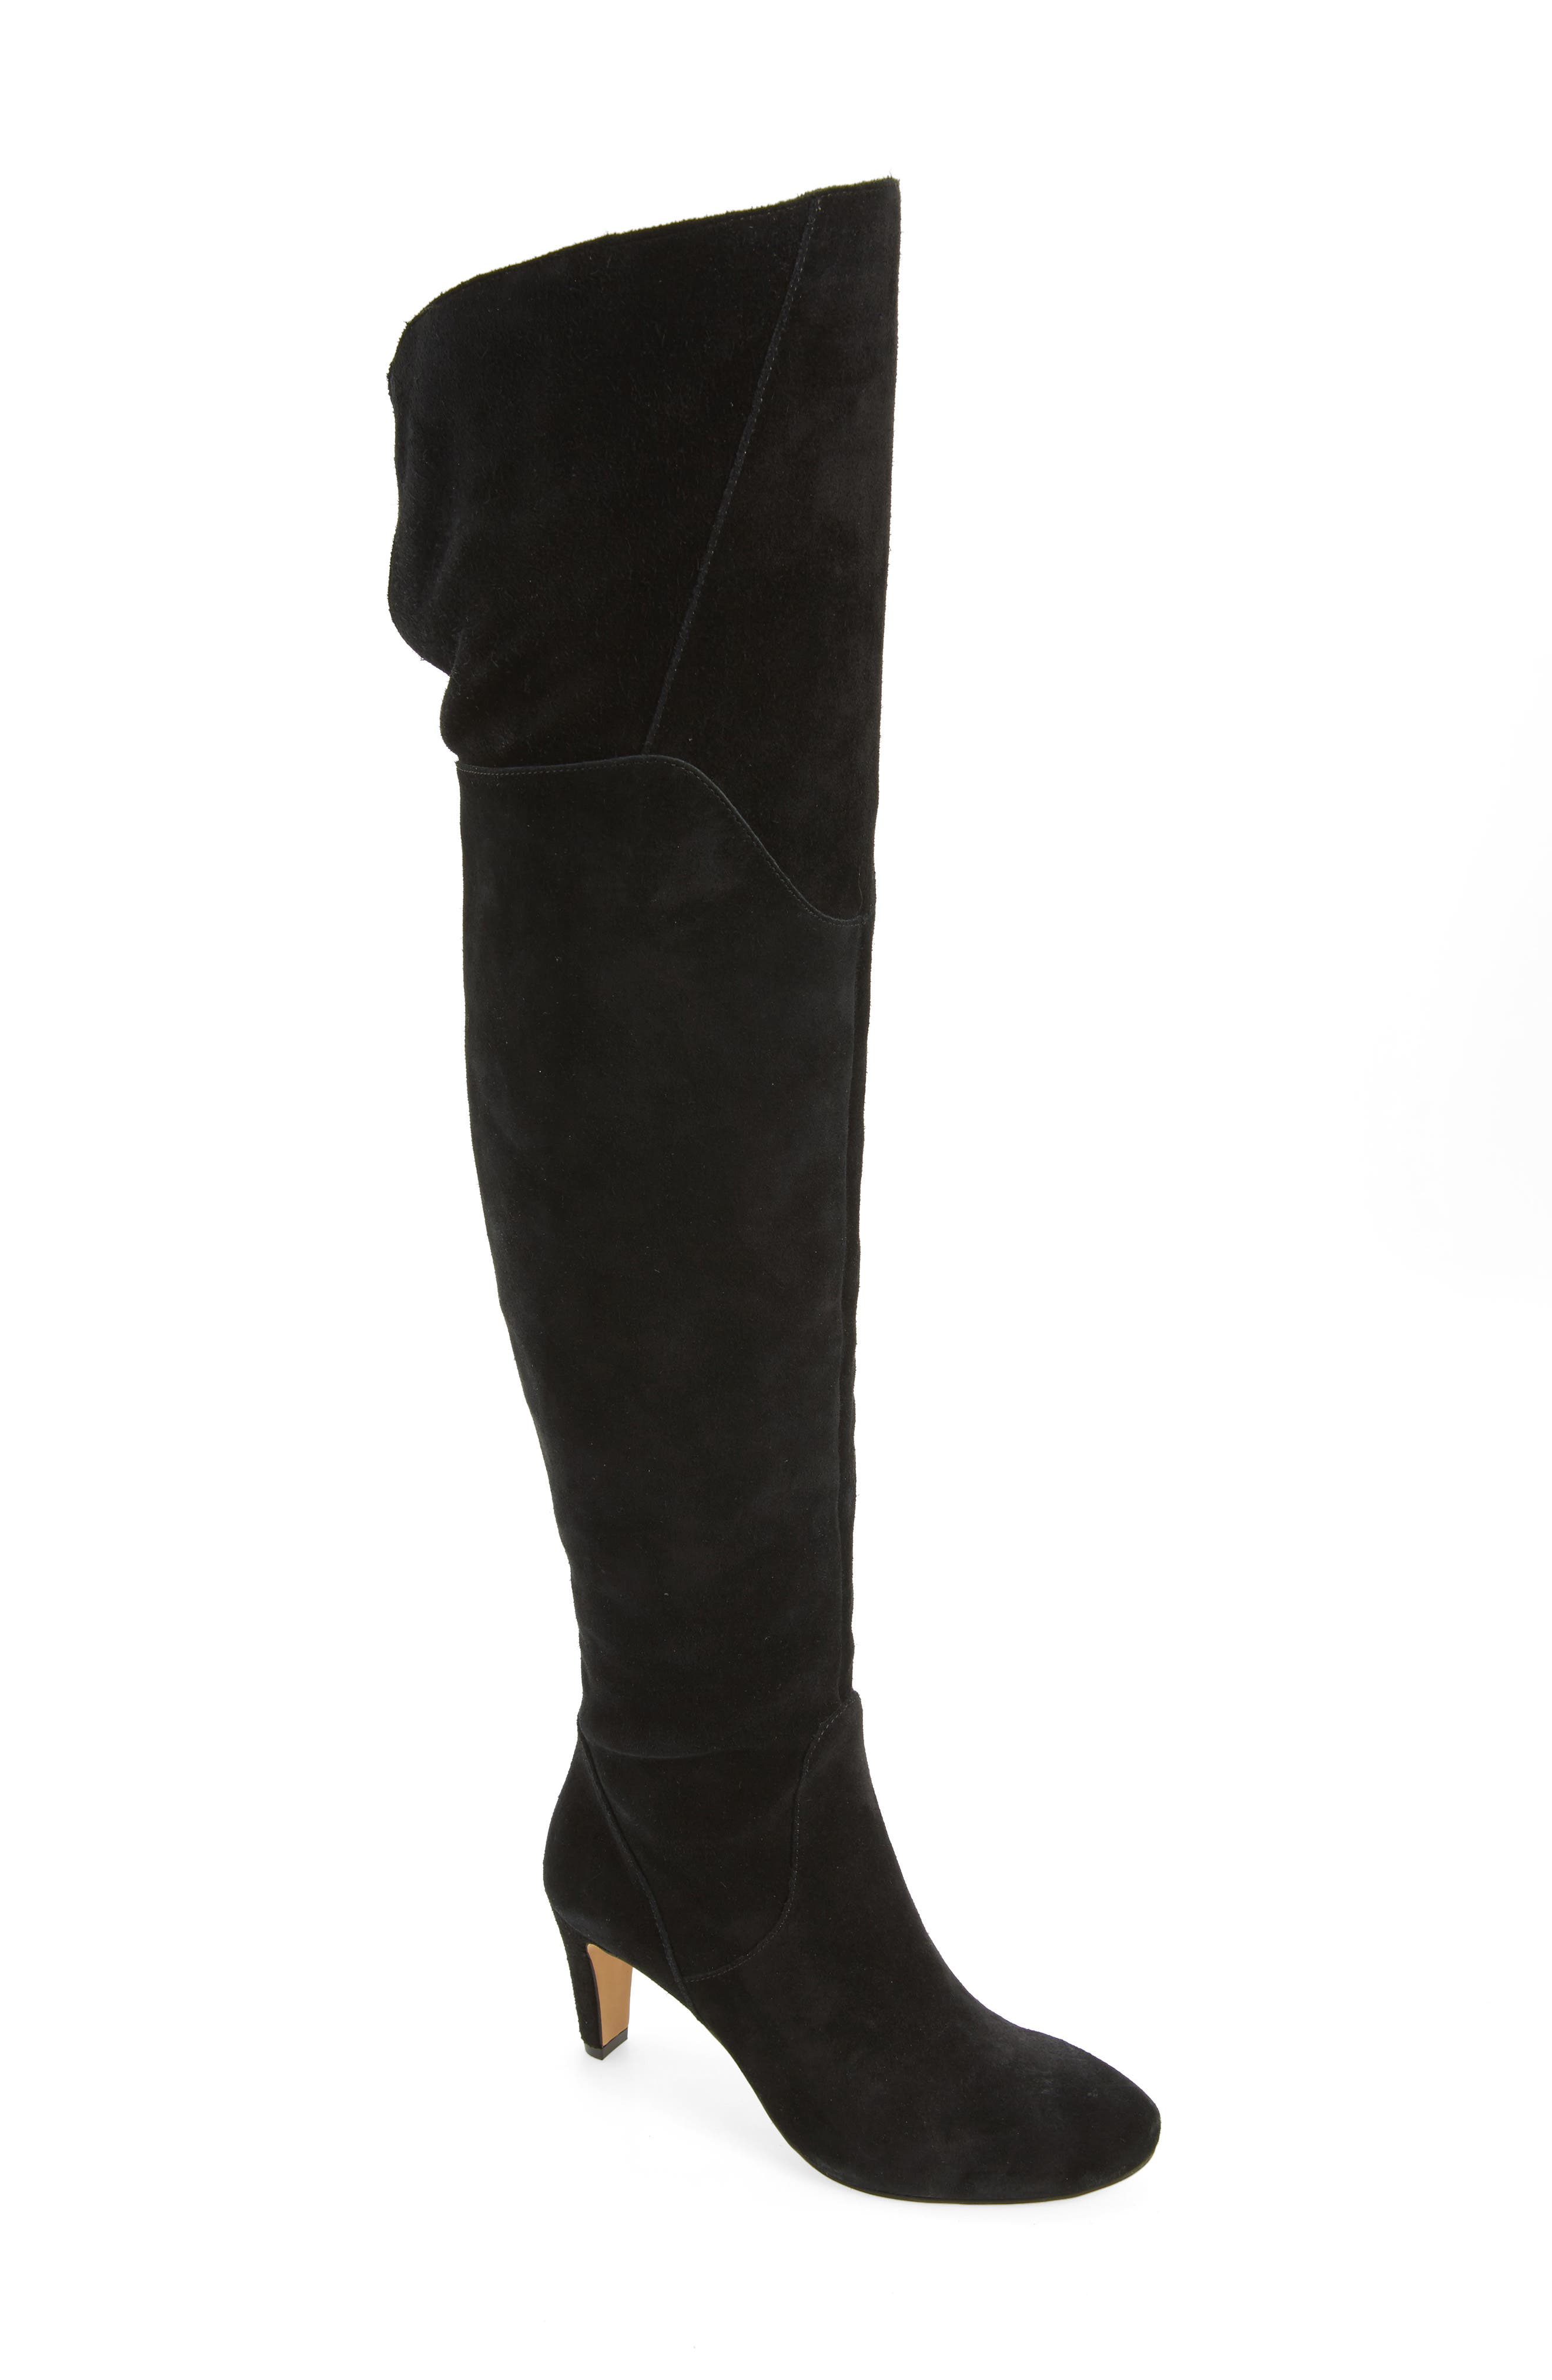 Armaceli Over the Knee Boot,                             Main thumbnail 1, color,